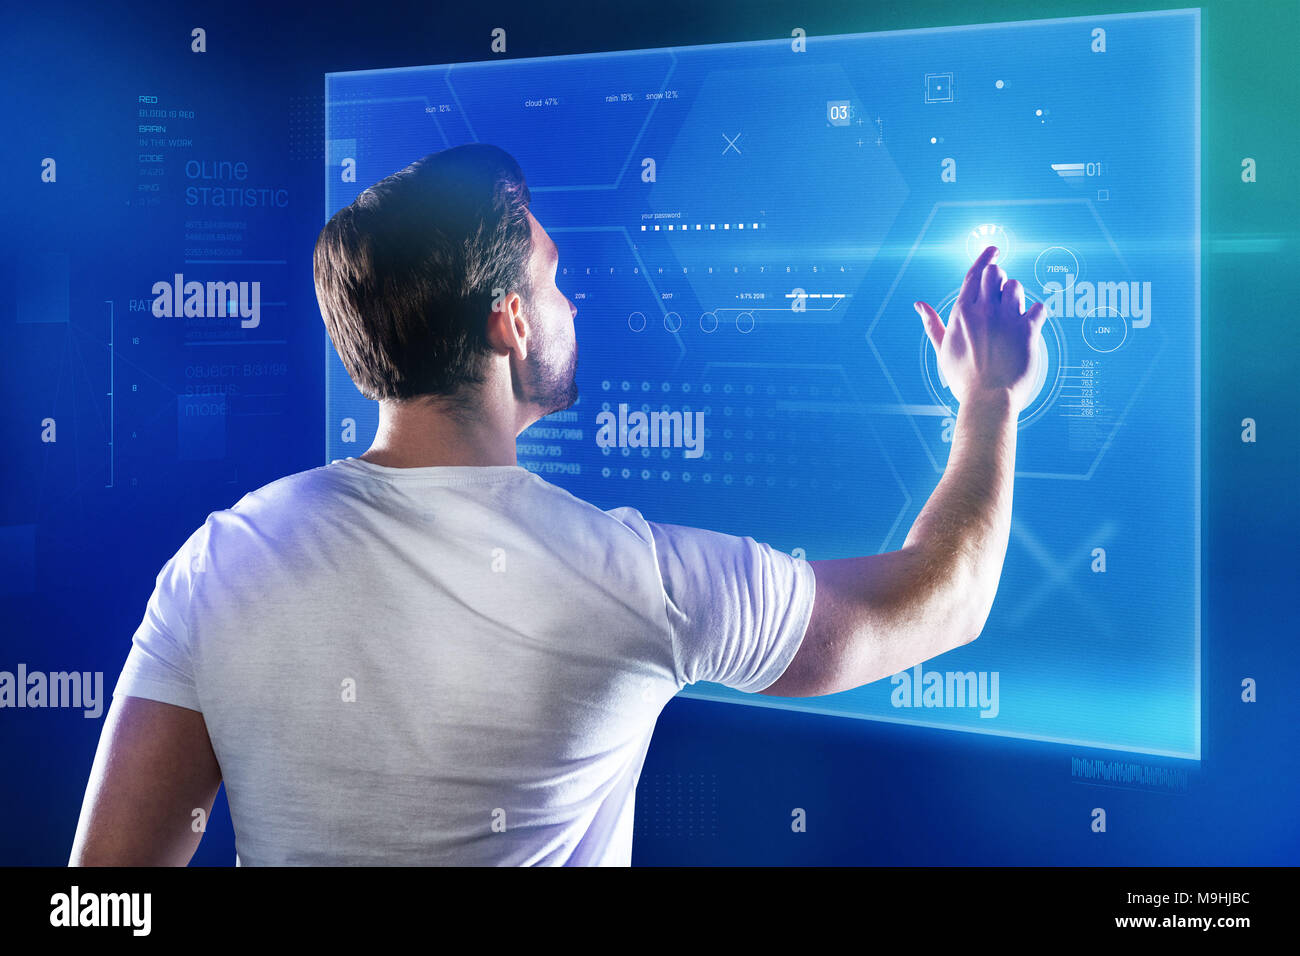 Skilled programmer working with a new device and touching a transparent screen - Stock Image